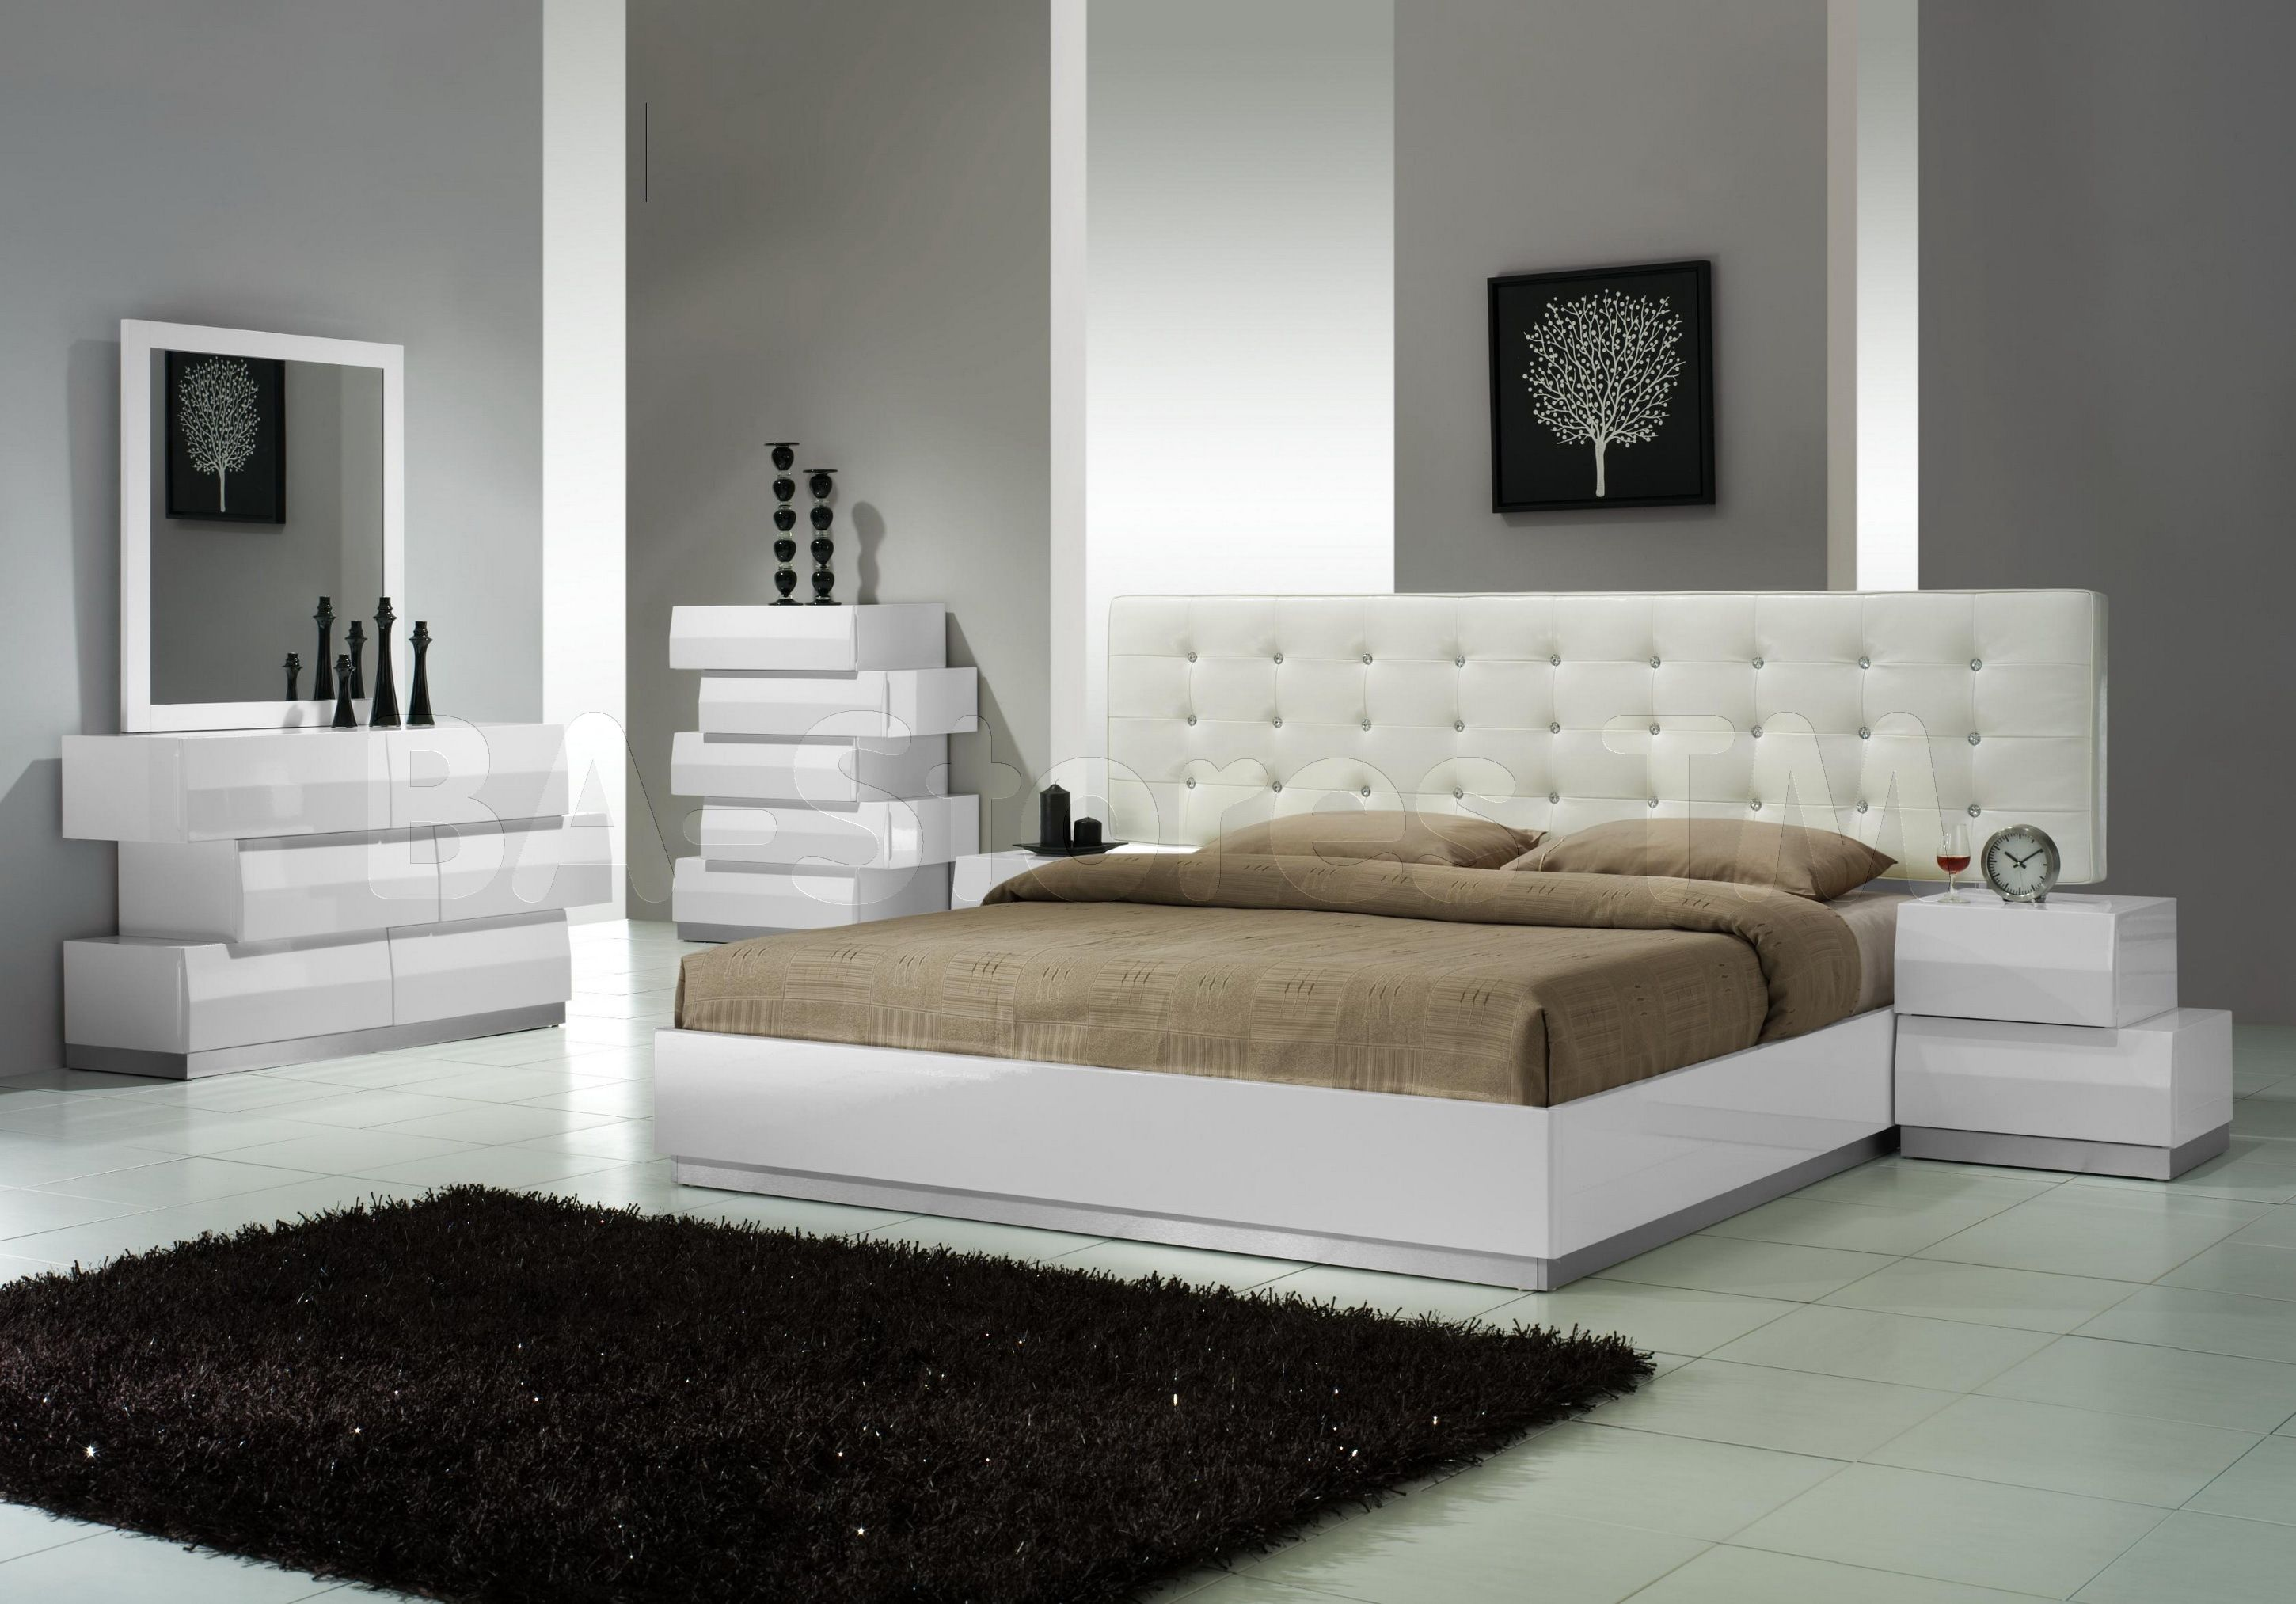 Contemporary Bedroom Furniture Designs Fascinating Milan 5 Pc Bedroom Set In White Lacquered Finishj&m  Bedroom Decorating Inspiration